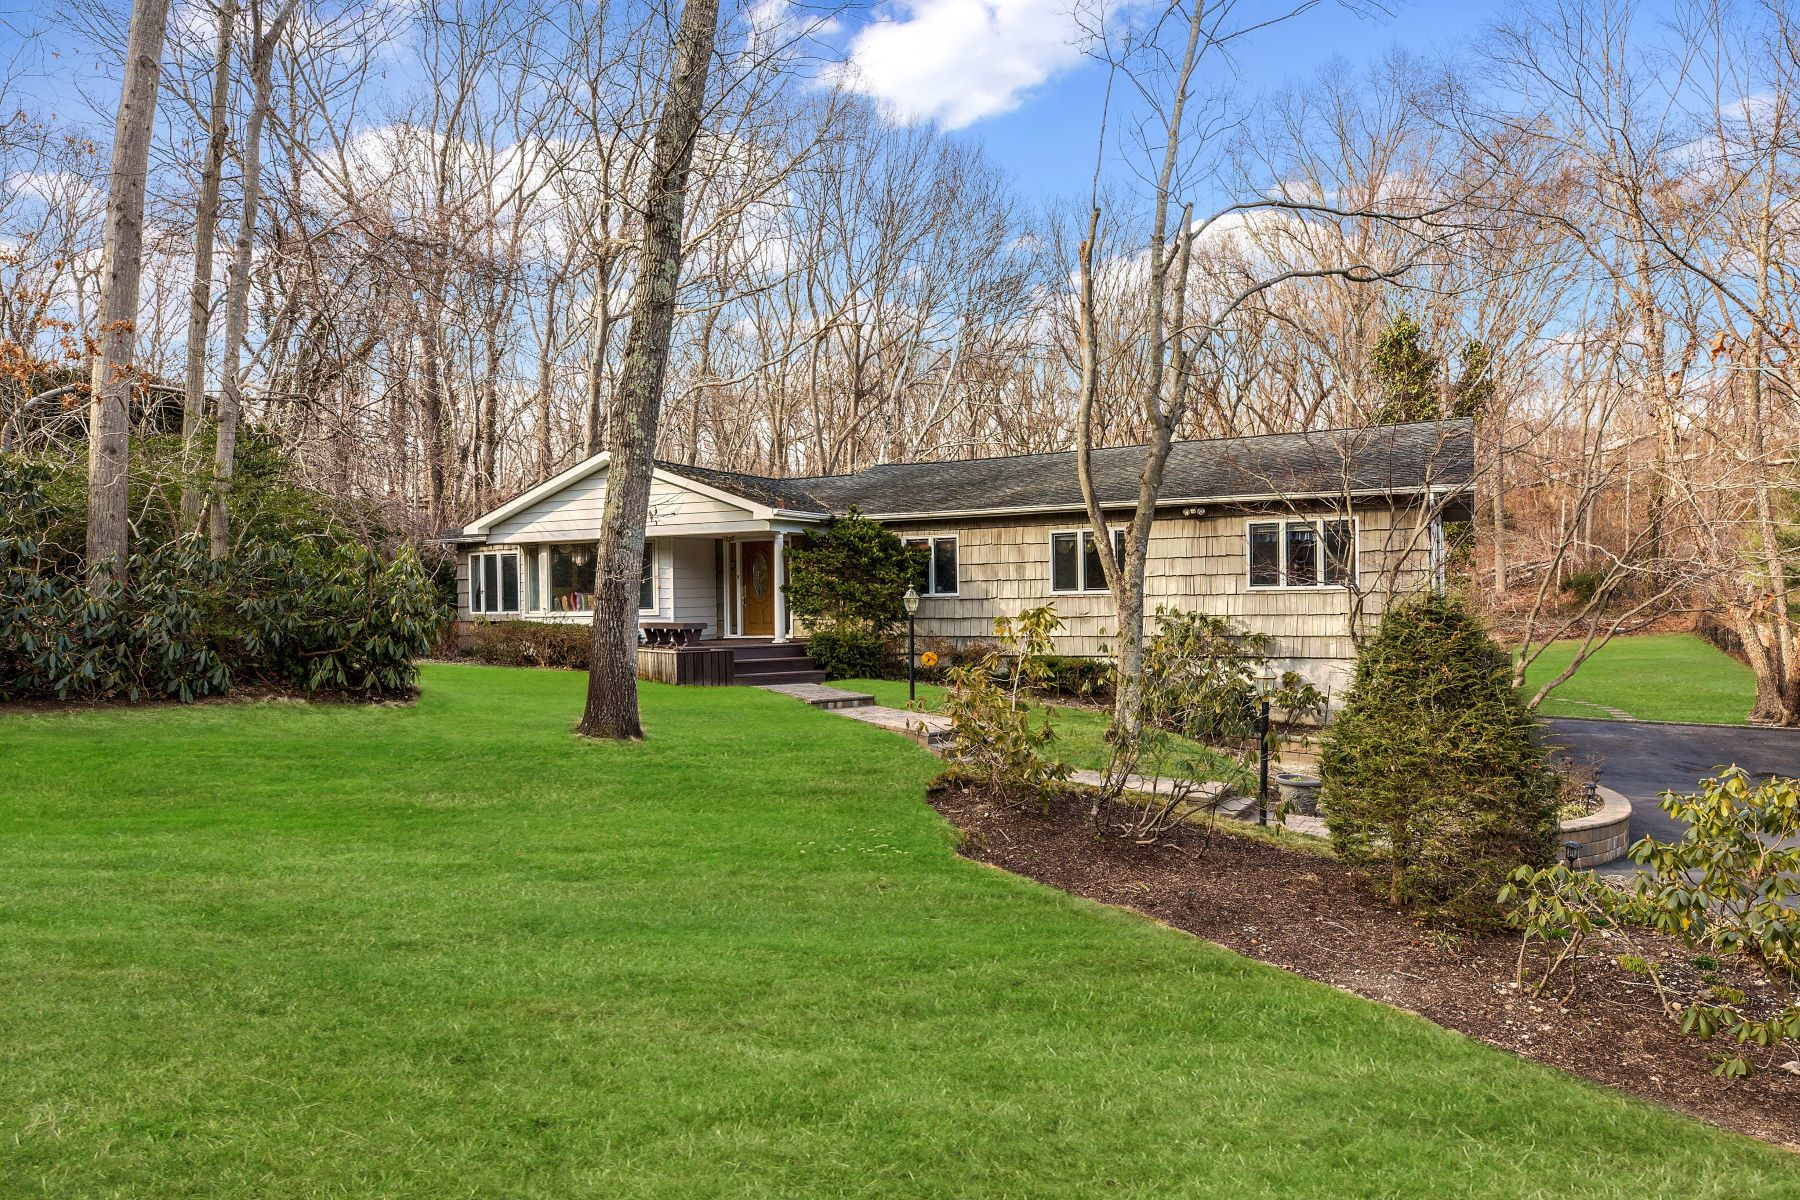 Single Family Homes for Active at Melville 11 Farmington Ln Melville, New York 11747 United States